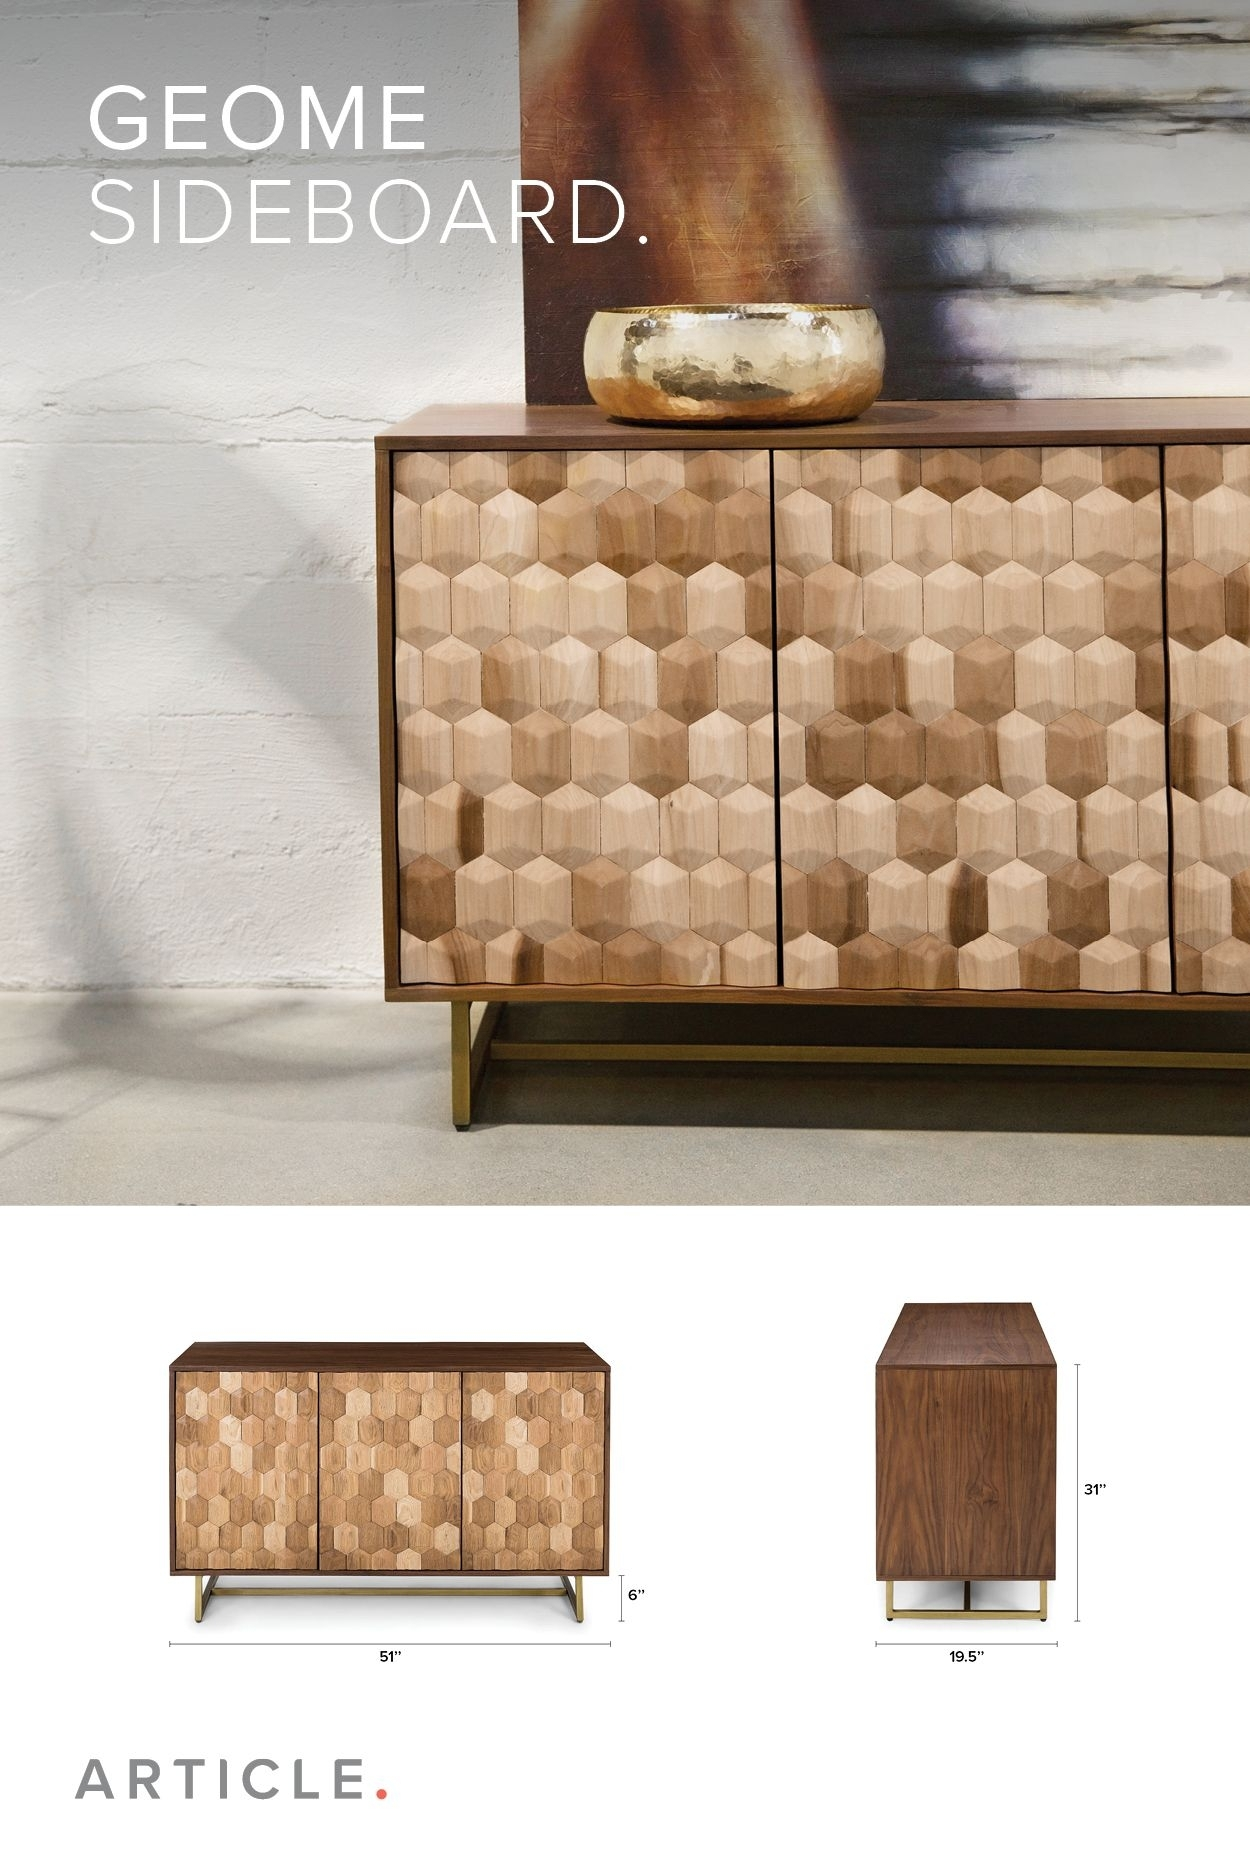 Oak And Walnut Sideboard, Brass Legs | Article Geome Modern Throughout Latest Light Brown Reclaimed Elm & Pine 84 Inch Sideboards (View 17 of 20)